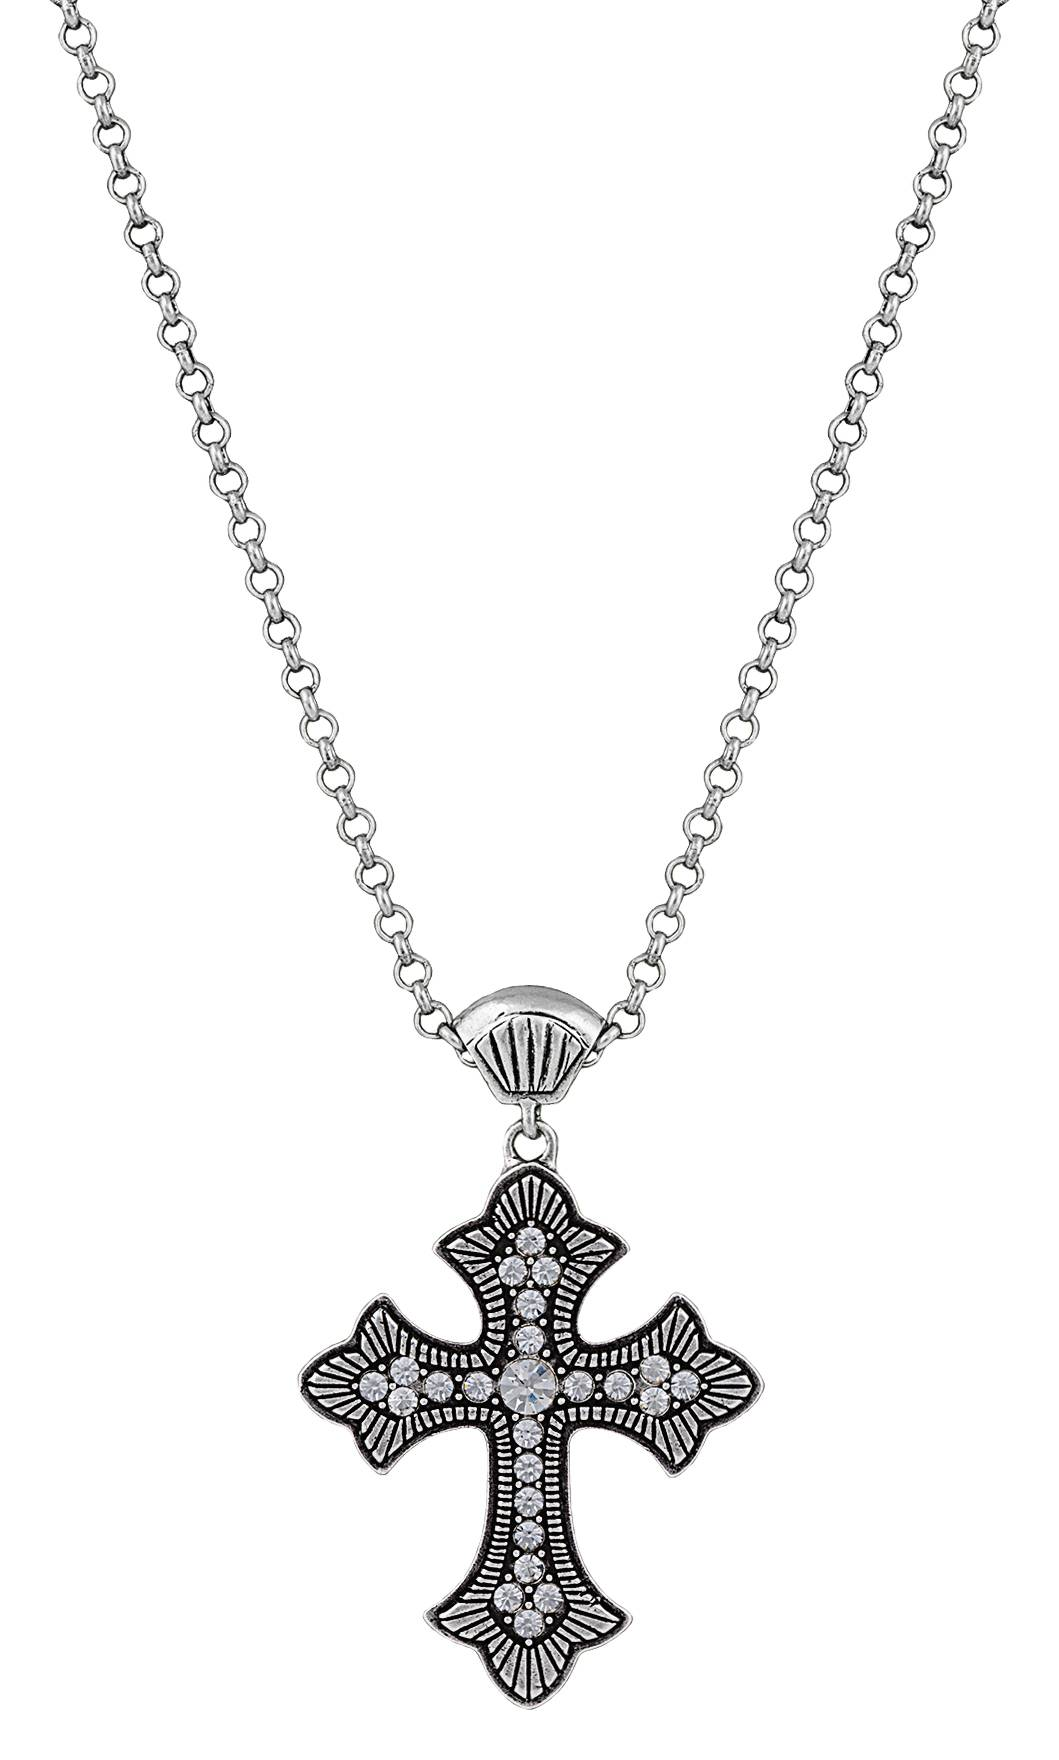 Rock 47 Vintage Kitsch Rope and Rhinestone Cross Necklace